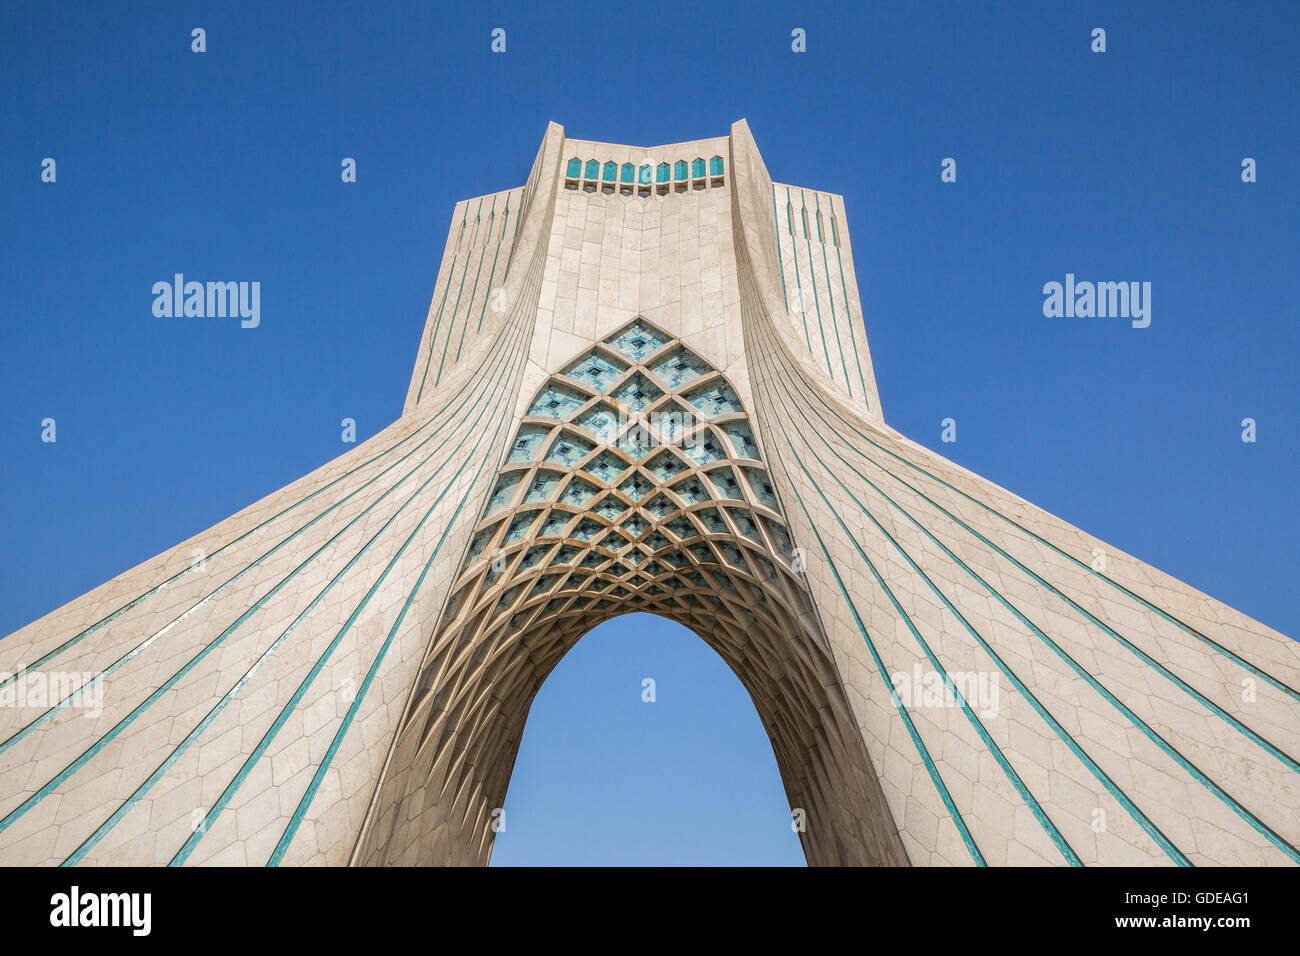 azadi tower in teheran city, iran, - Stock Image